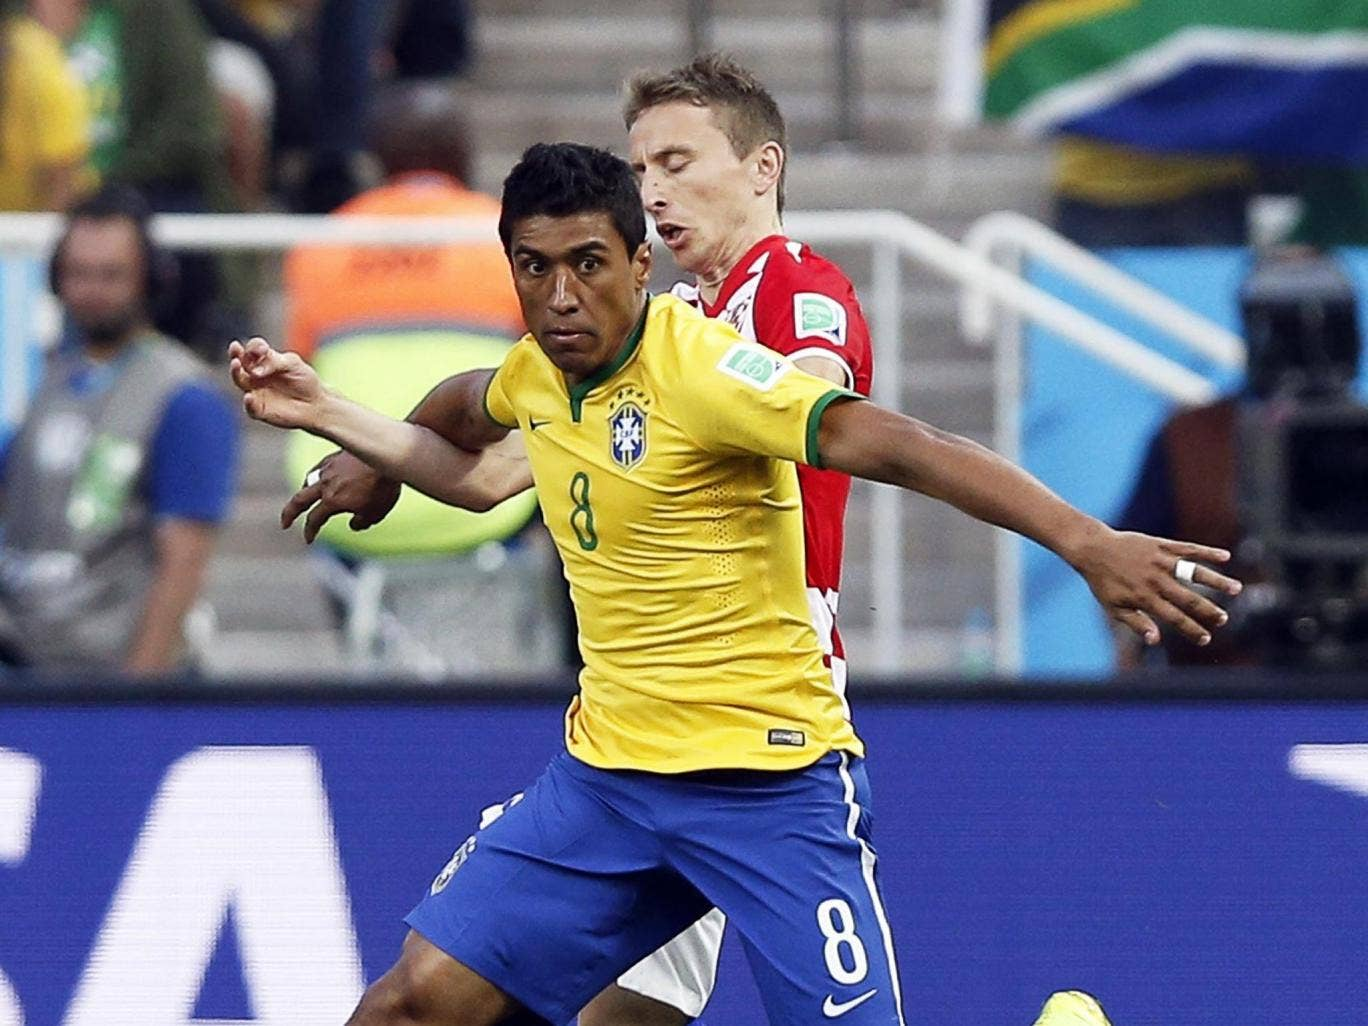 Paulinho can get box to box but he can't make a clever forward pass – as I found at Spurs